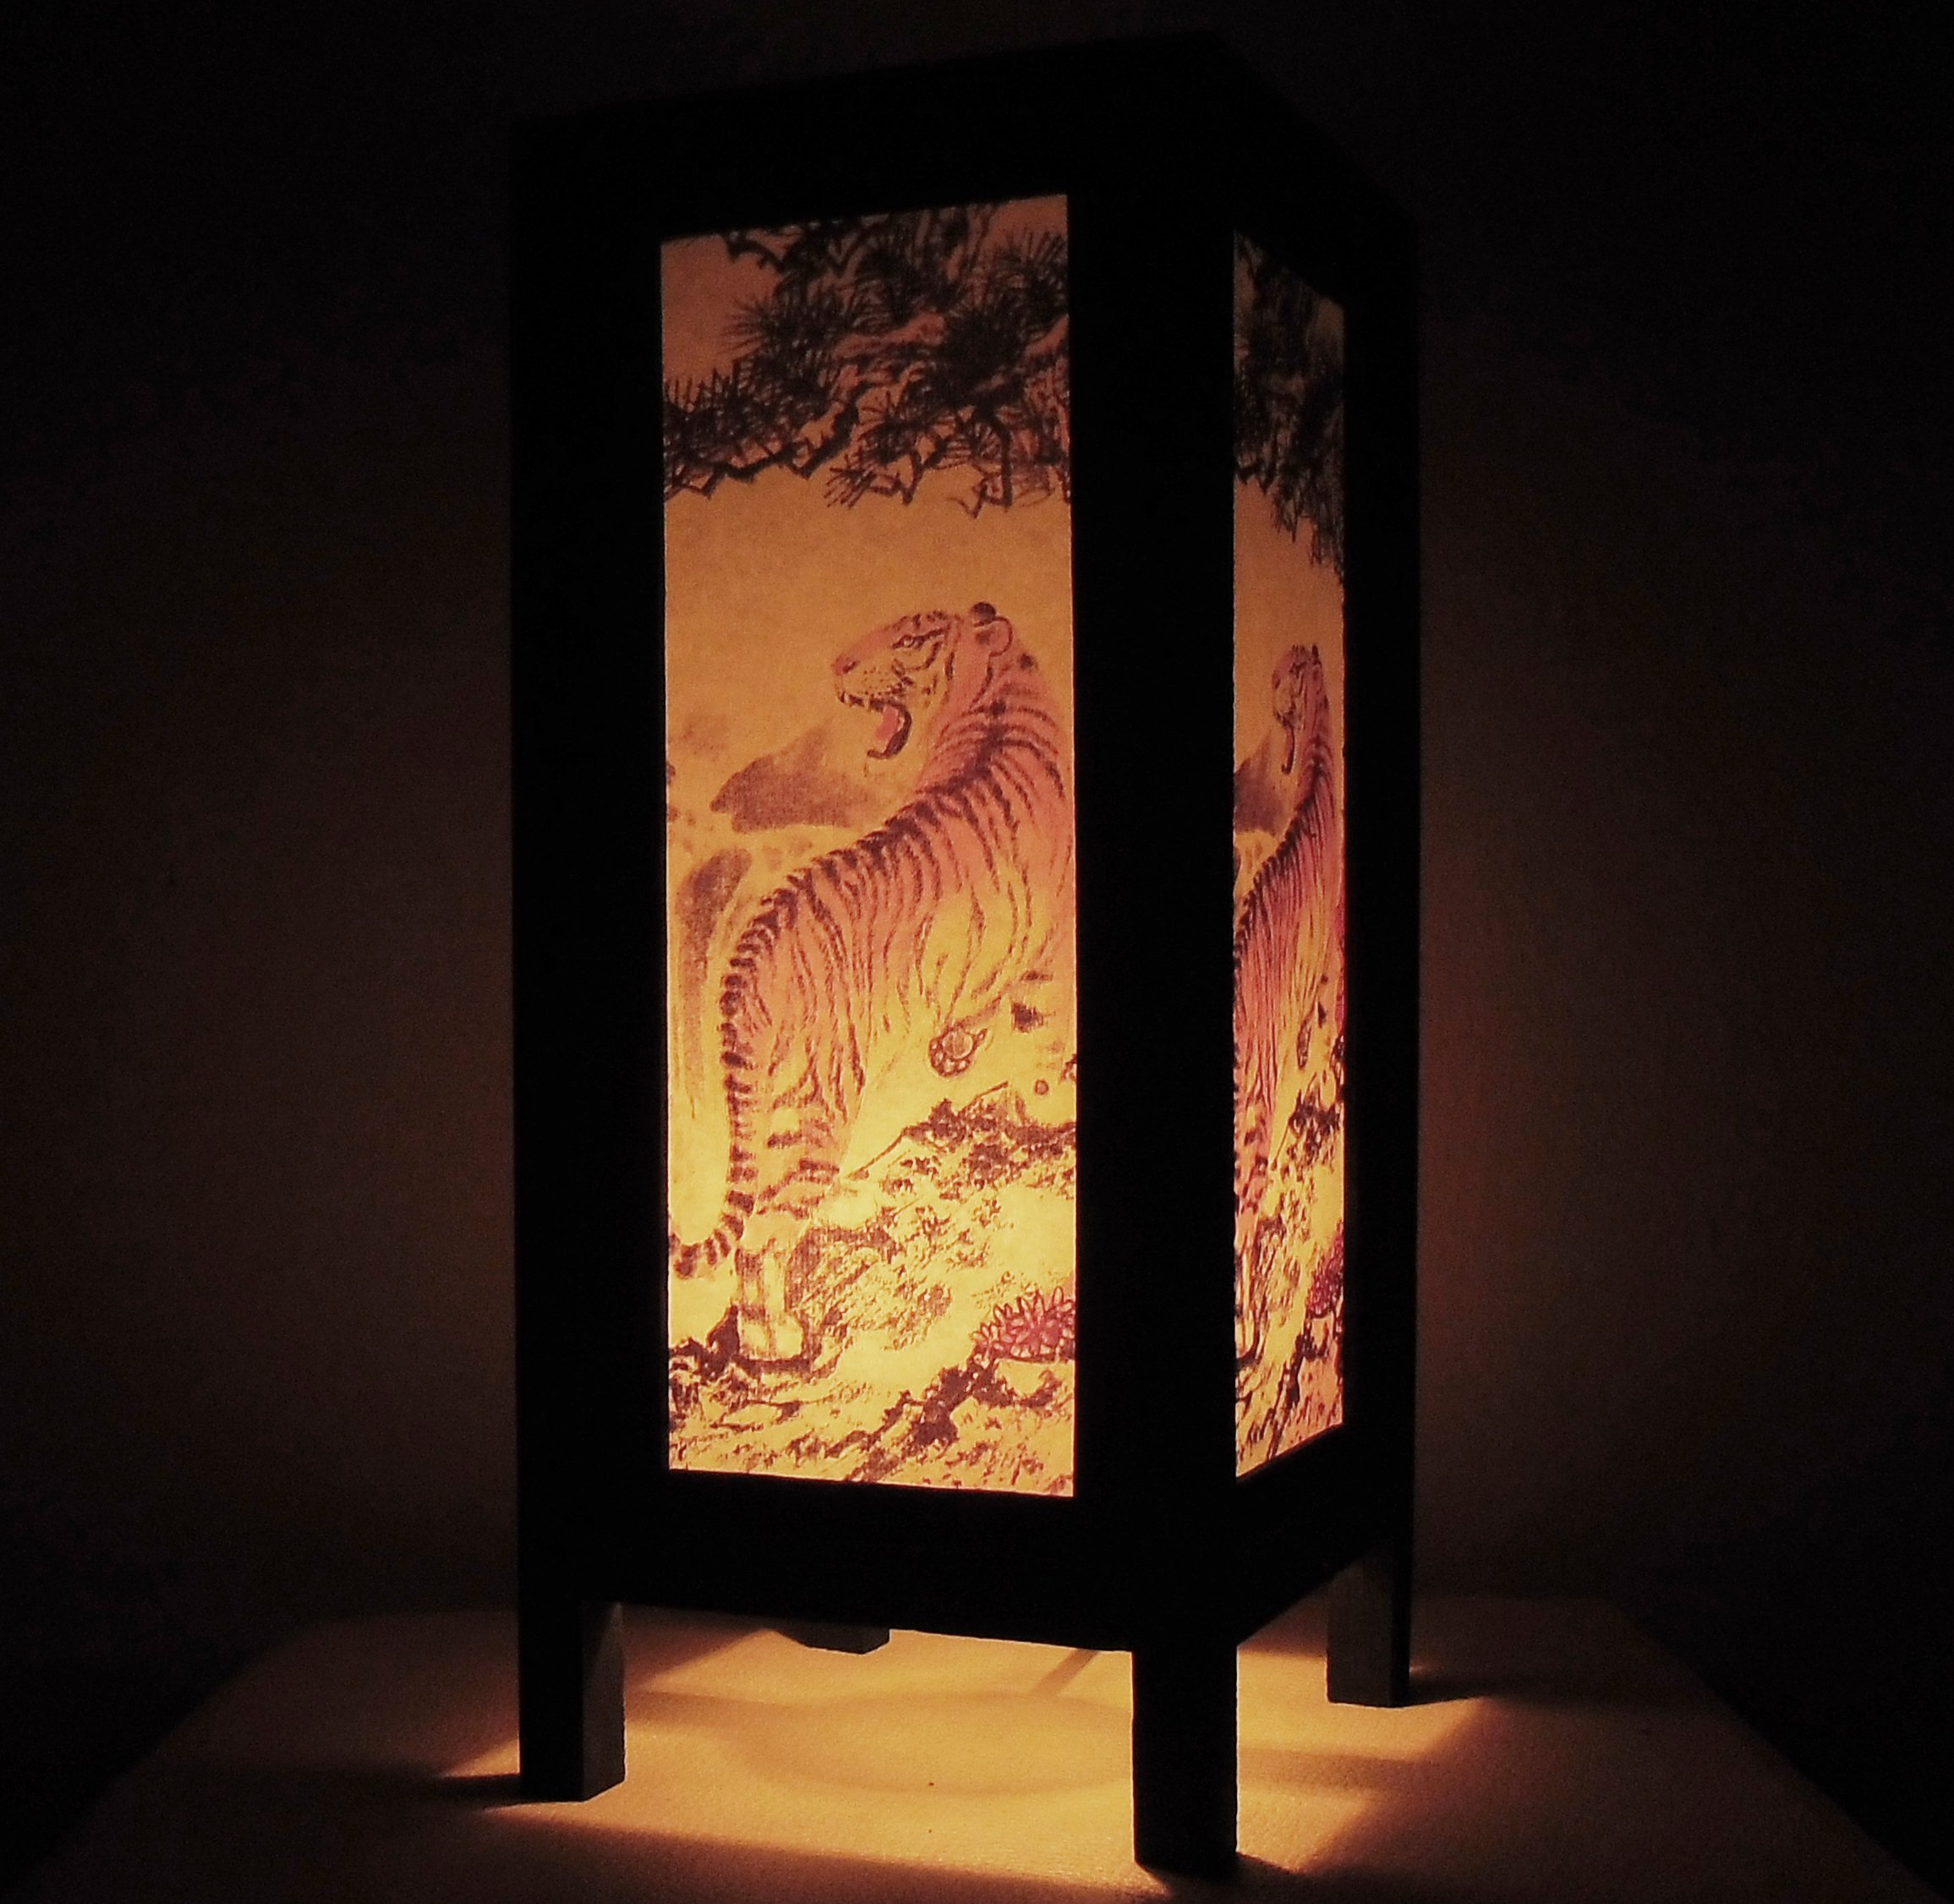 Thai Vintage Handmade Asian Oriental Thai Royal Bengal Tiger Bedside Table Light or Floor Wood Paper Lamp Shades Home Bedroom Garden Decor Modern Design from Thailand